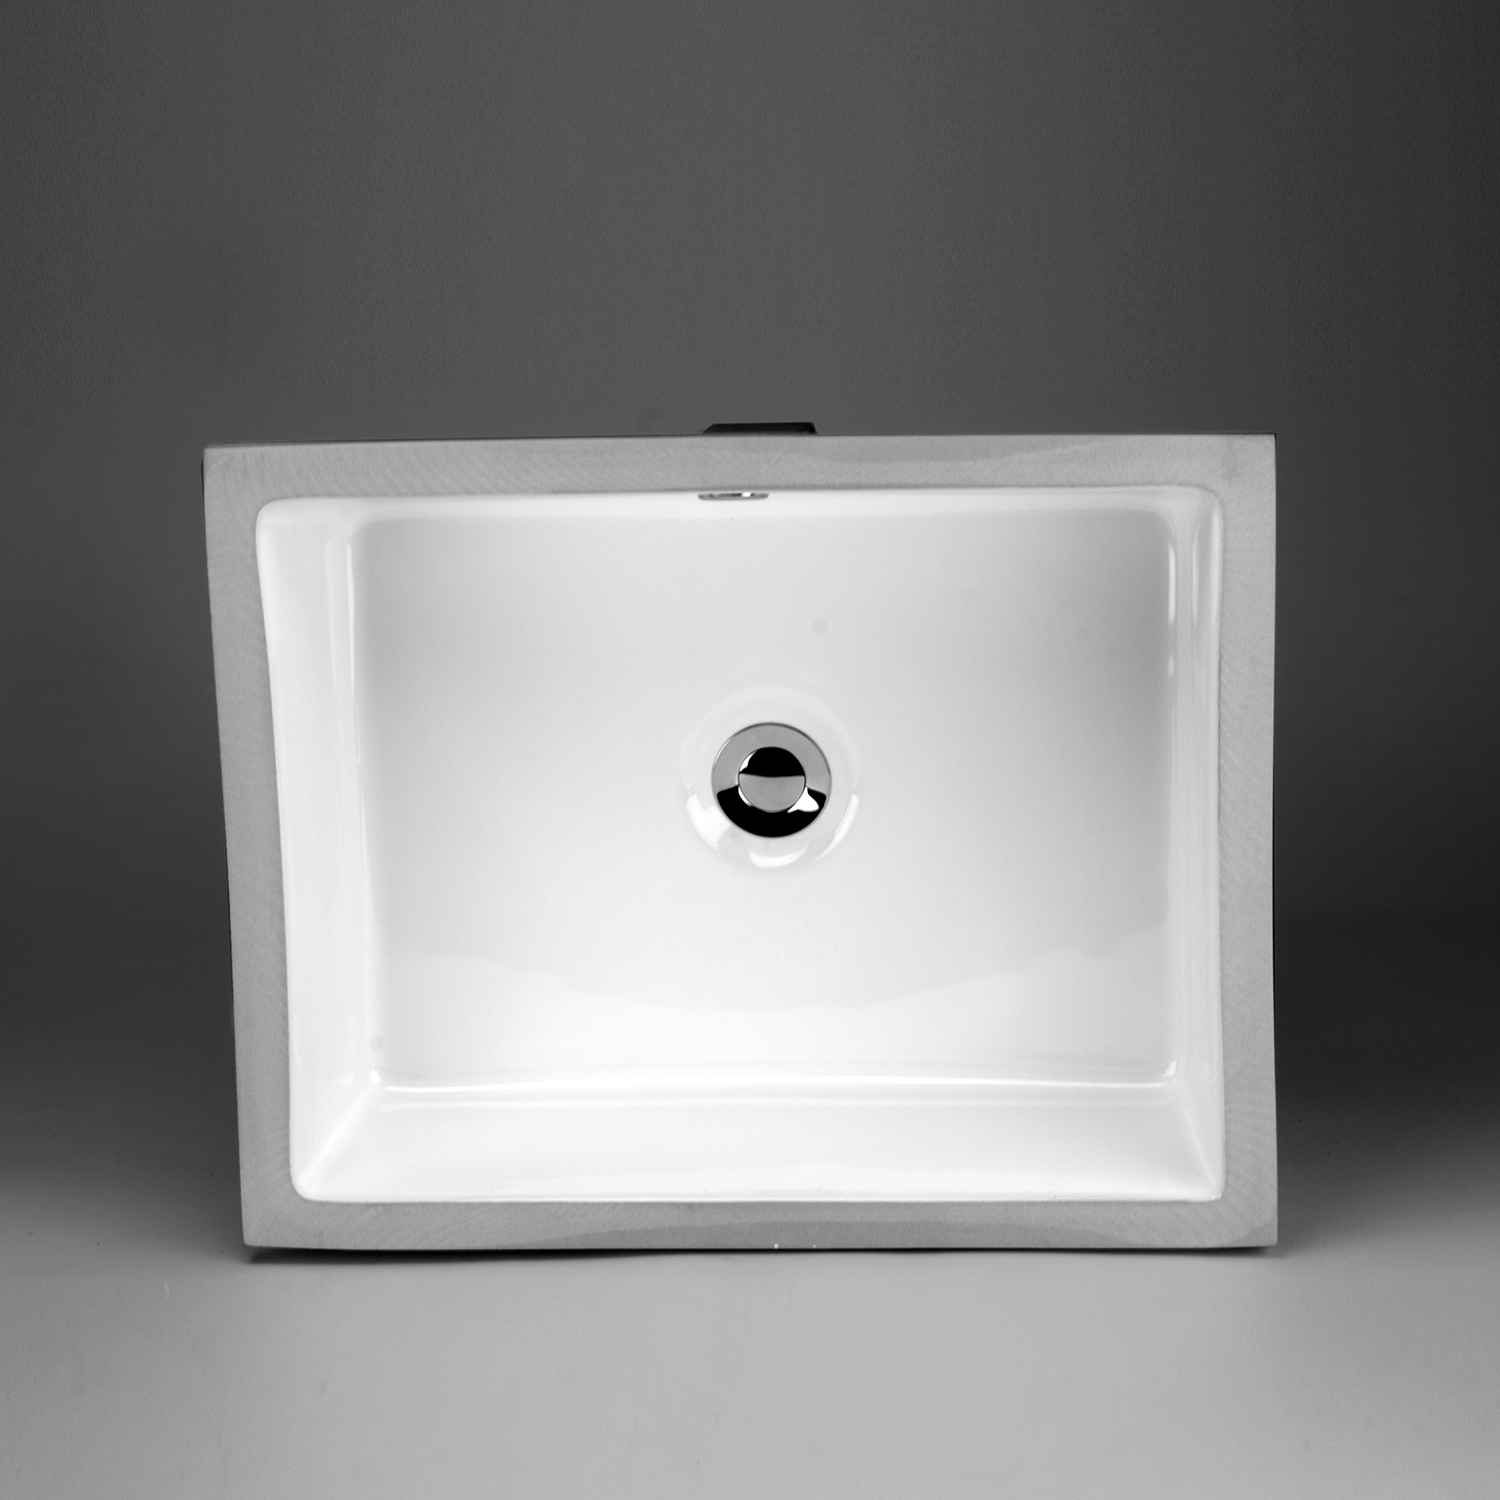 Island tub drain acri tec bath and kitchen products - 36977 Rectangular Basin